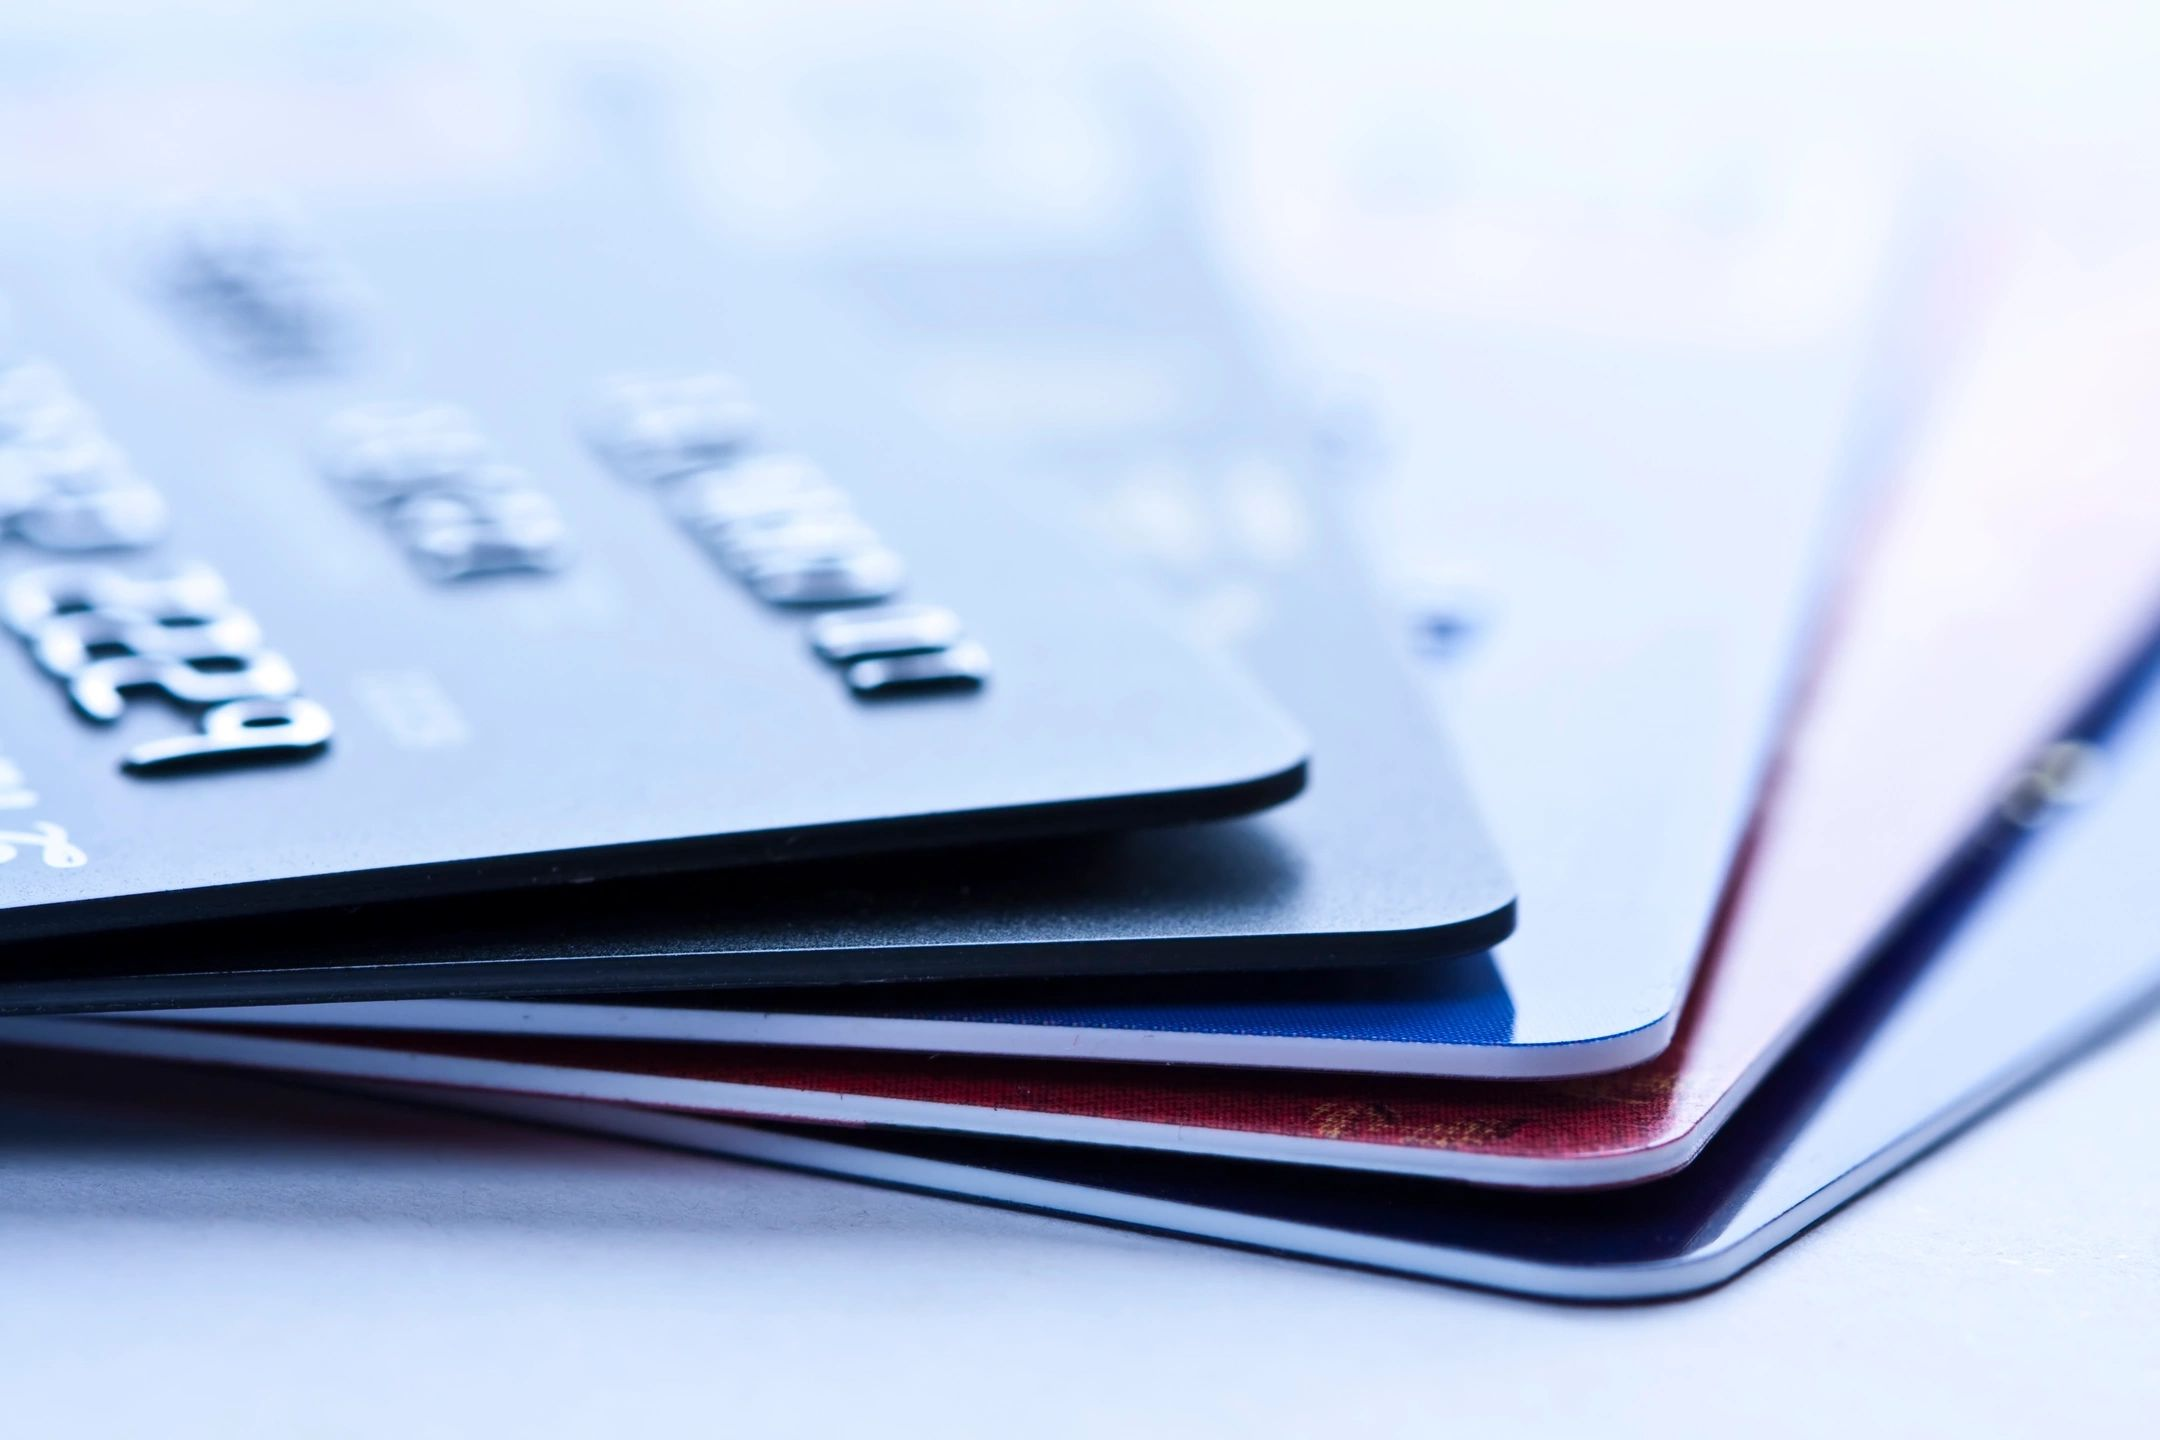 A stack of credit or debit cards